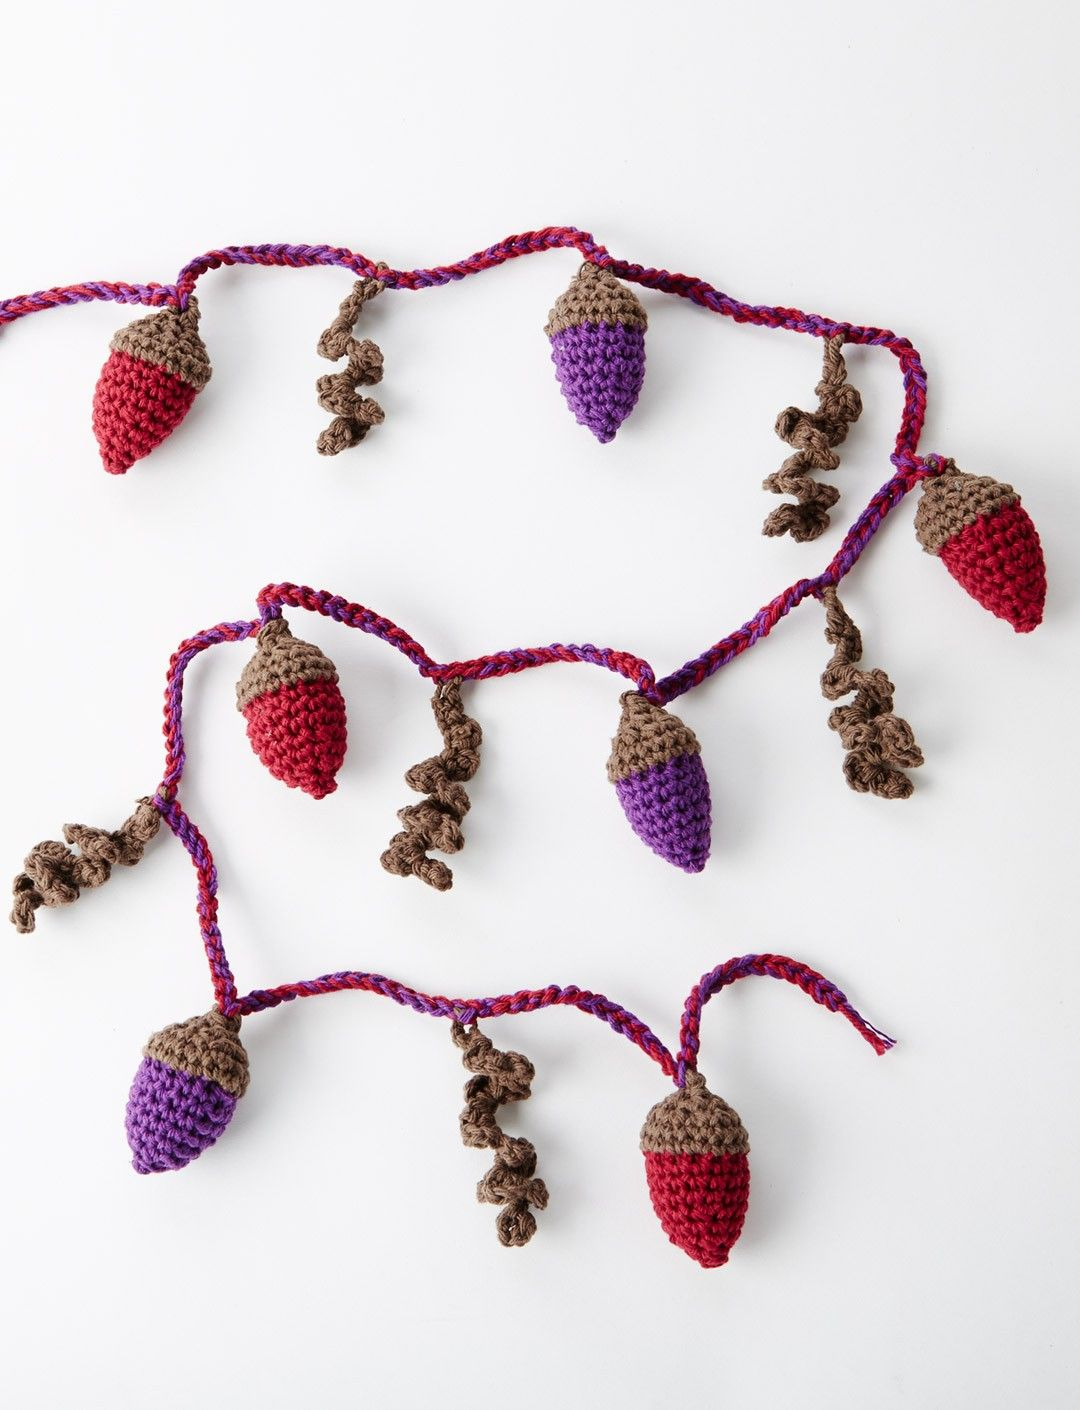 Autumn Acorns Garland Herst Eichel Girlande Free Crochet Pattern